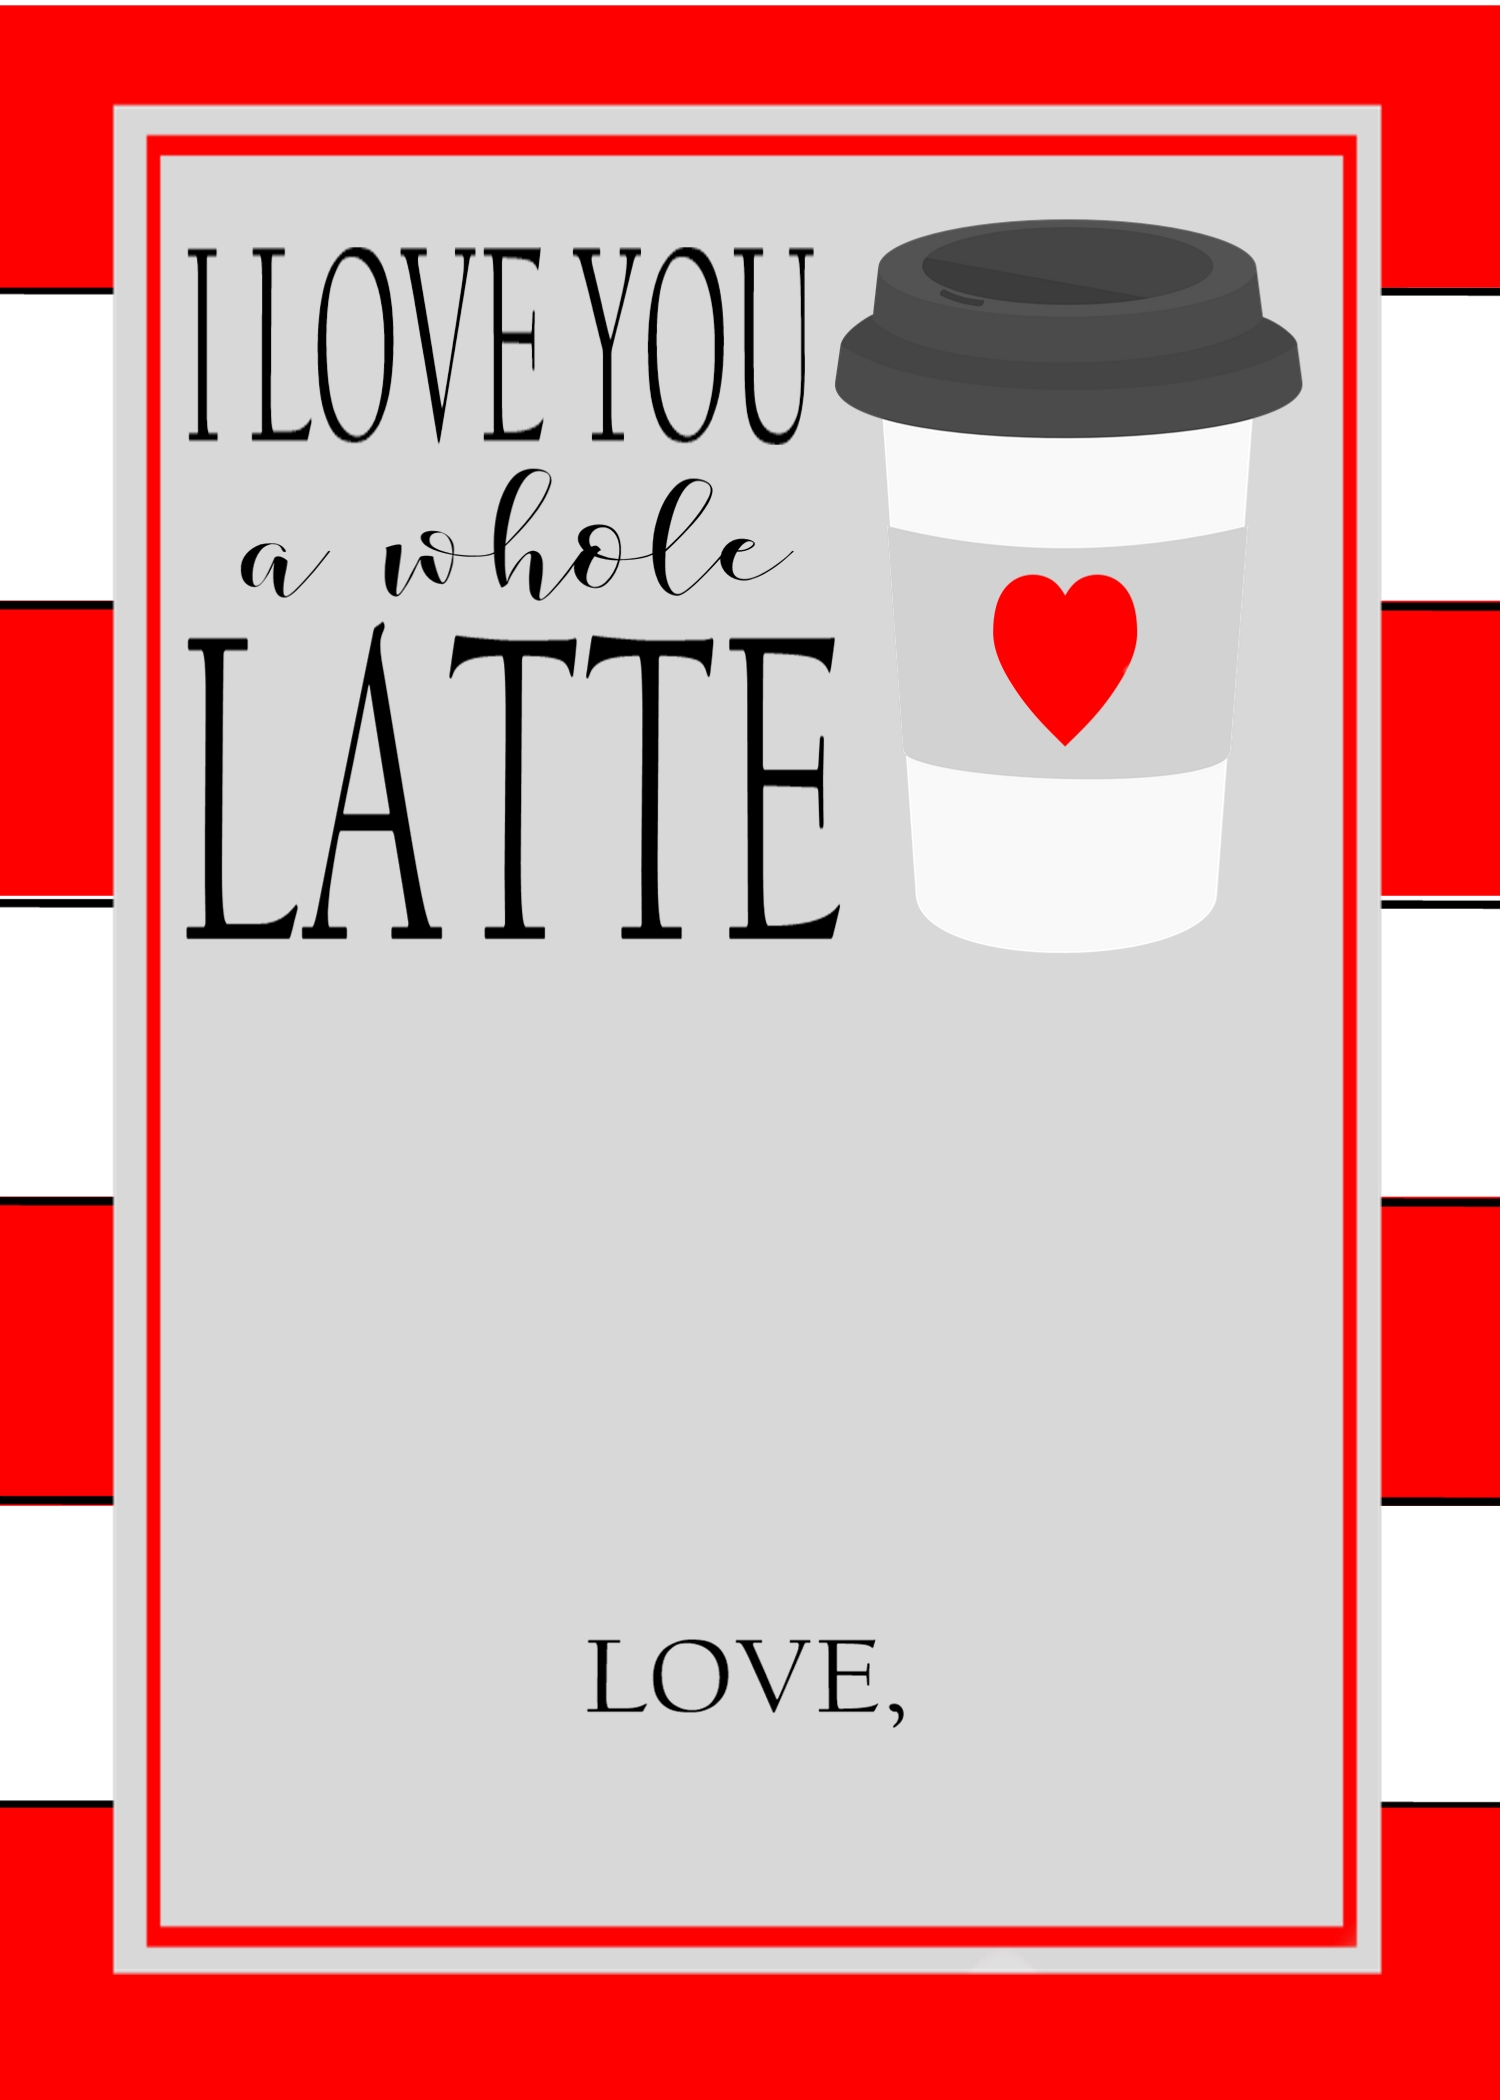 Latte Red JPEG